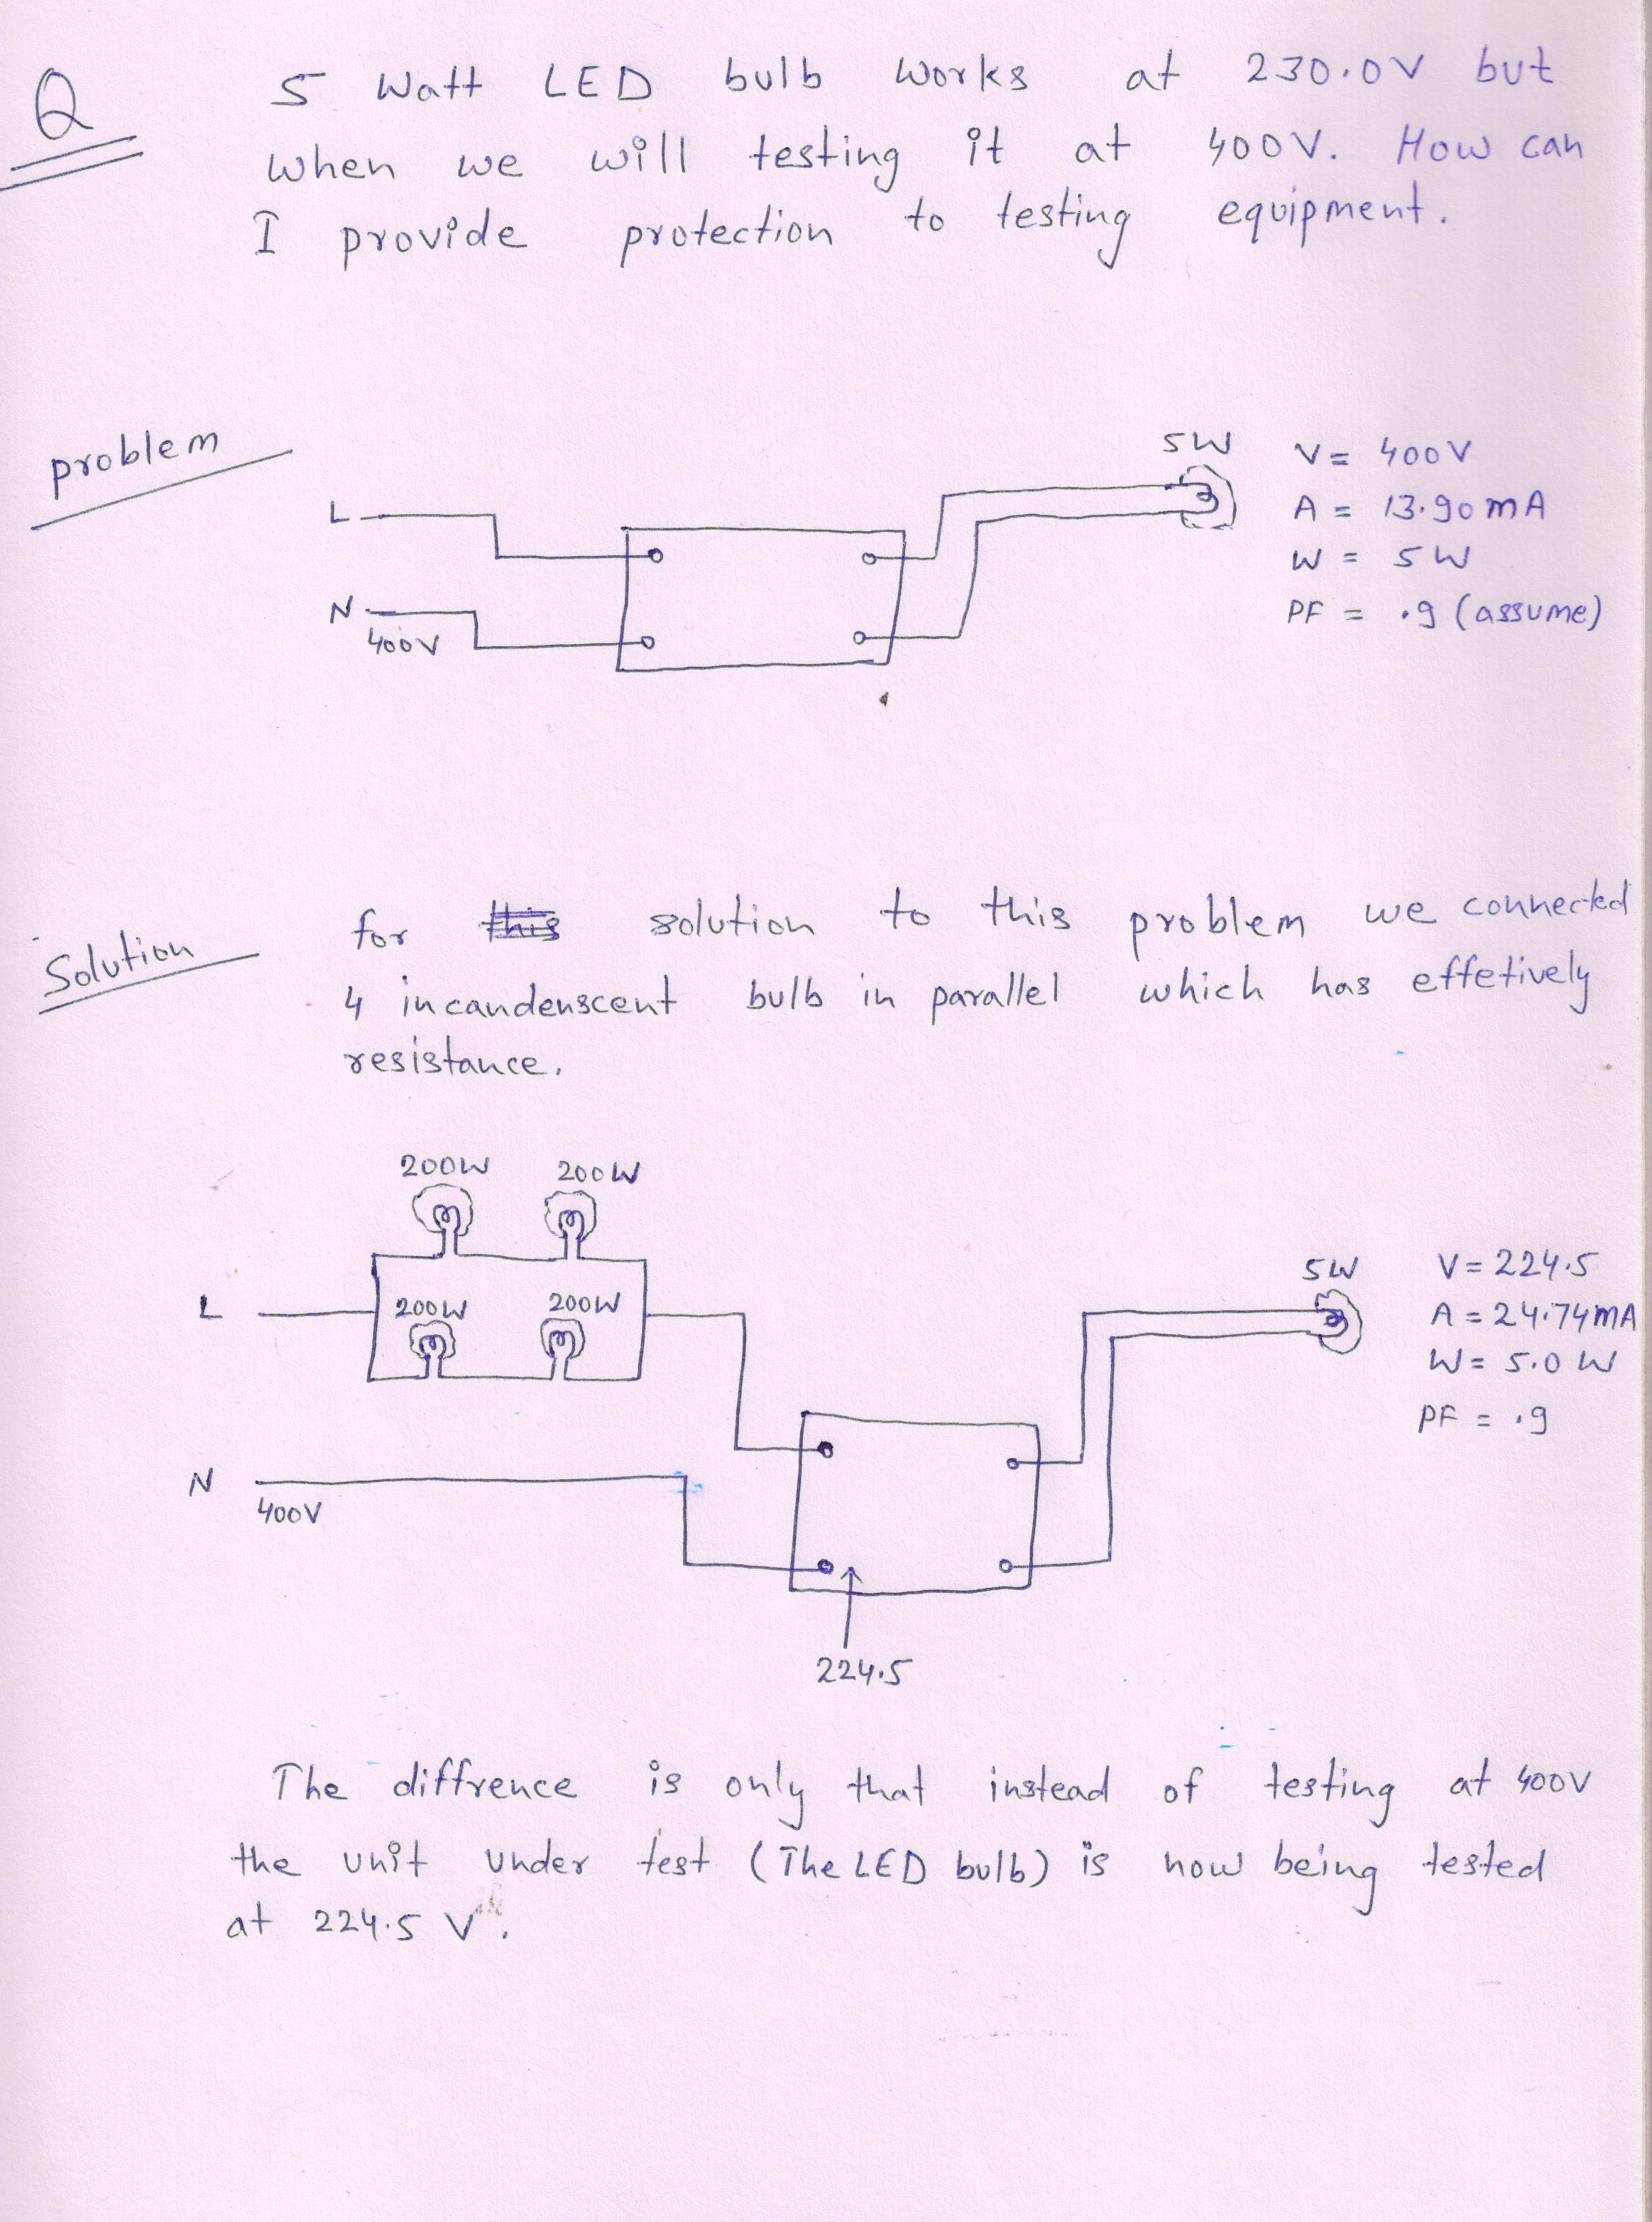 How To Provide Short Circuit Protection Testing Equipment Led Bulb Driver Diagram Lamp 5 Watt At 400 Voltagefor This Problem We A In Above Page